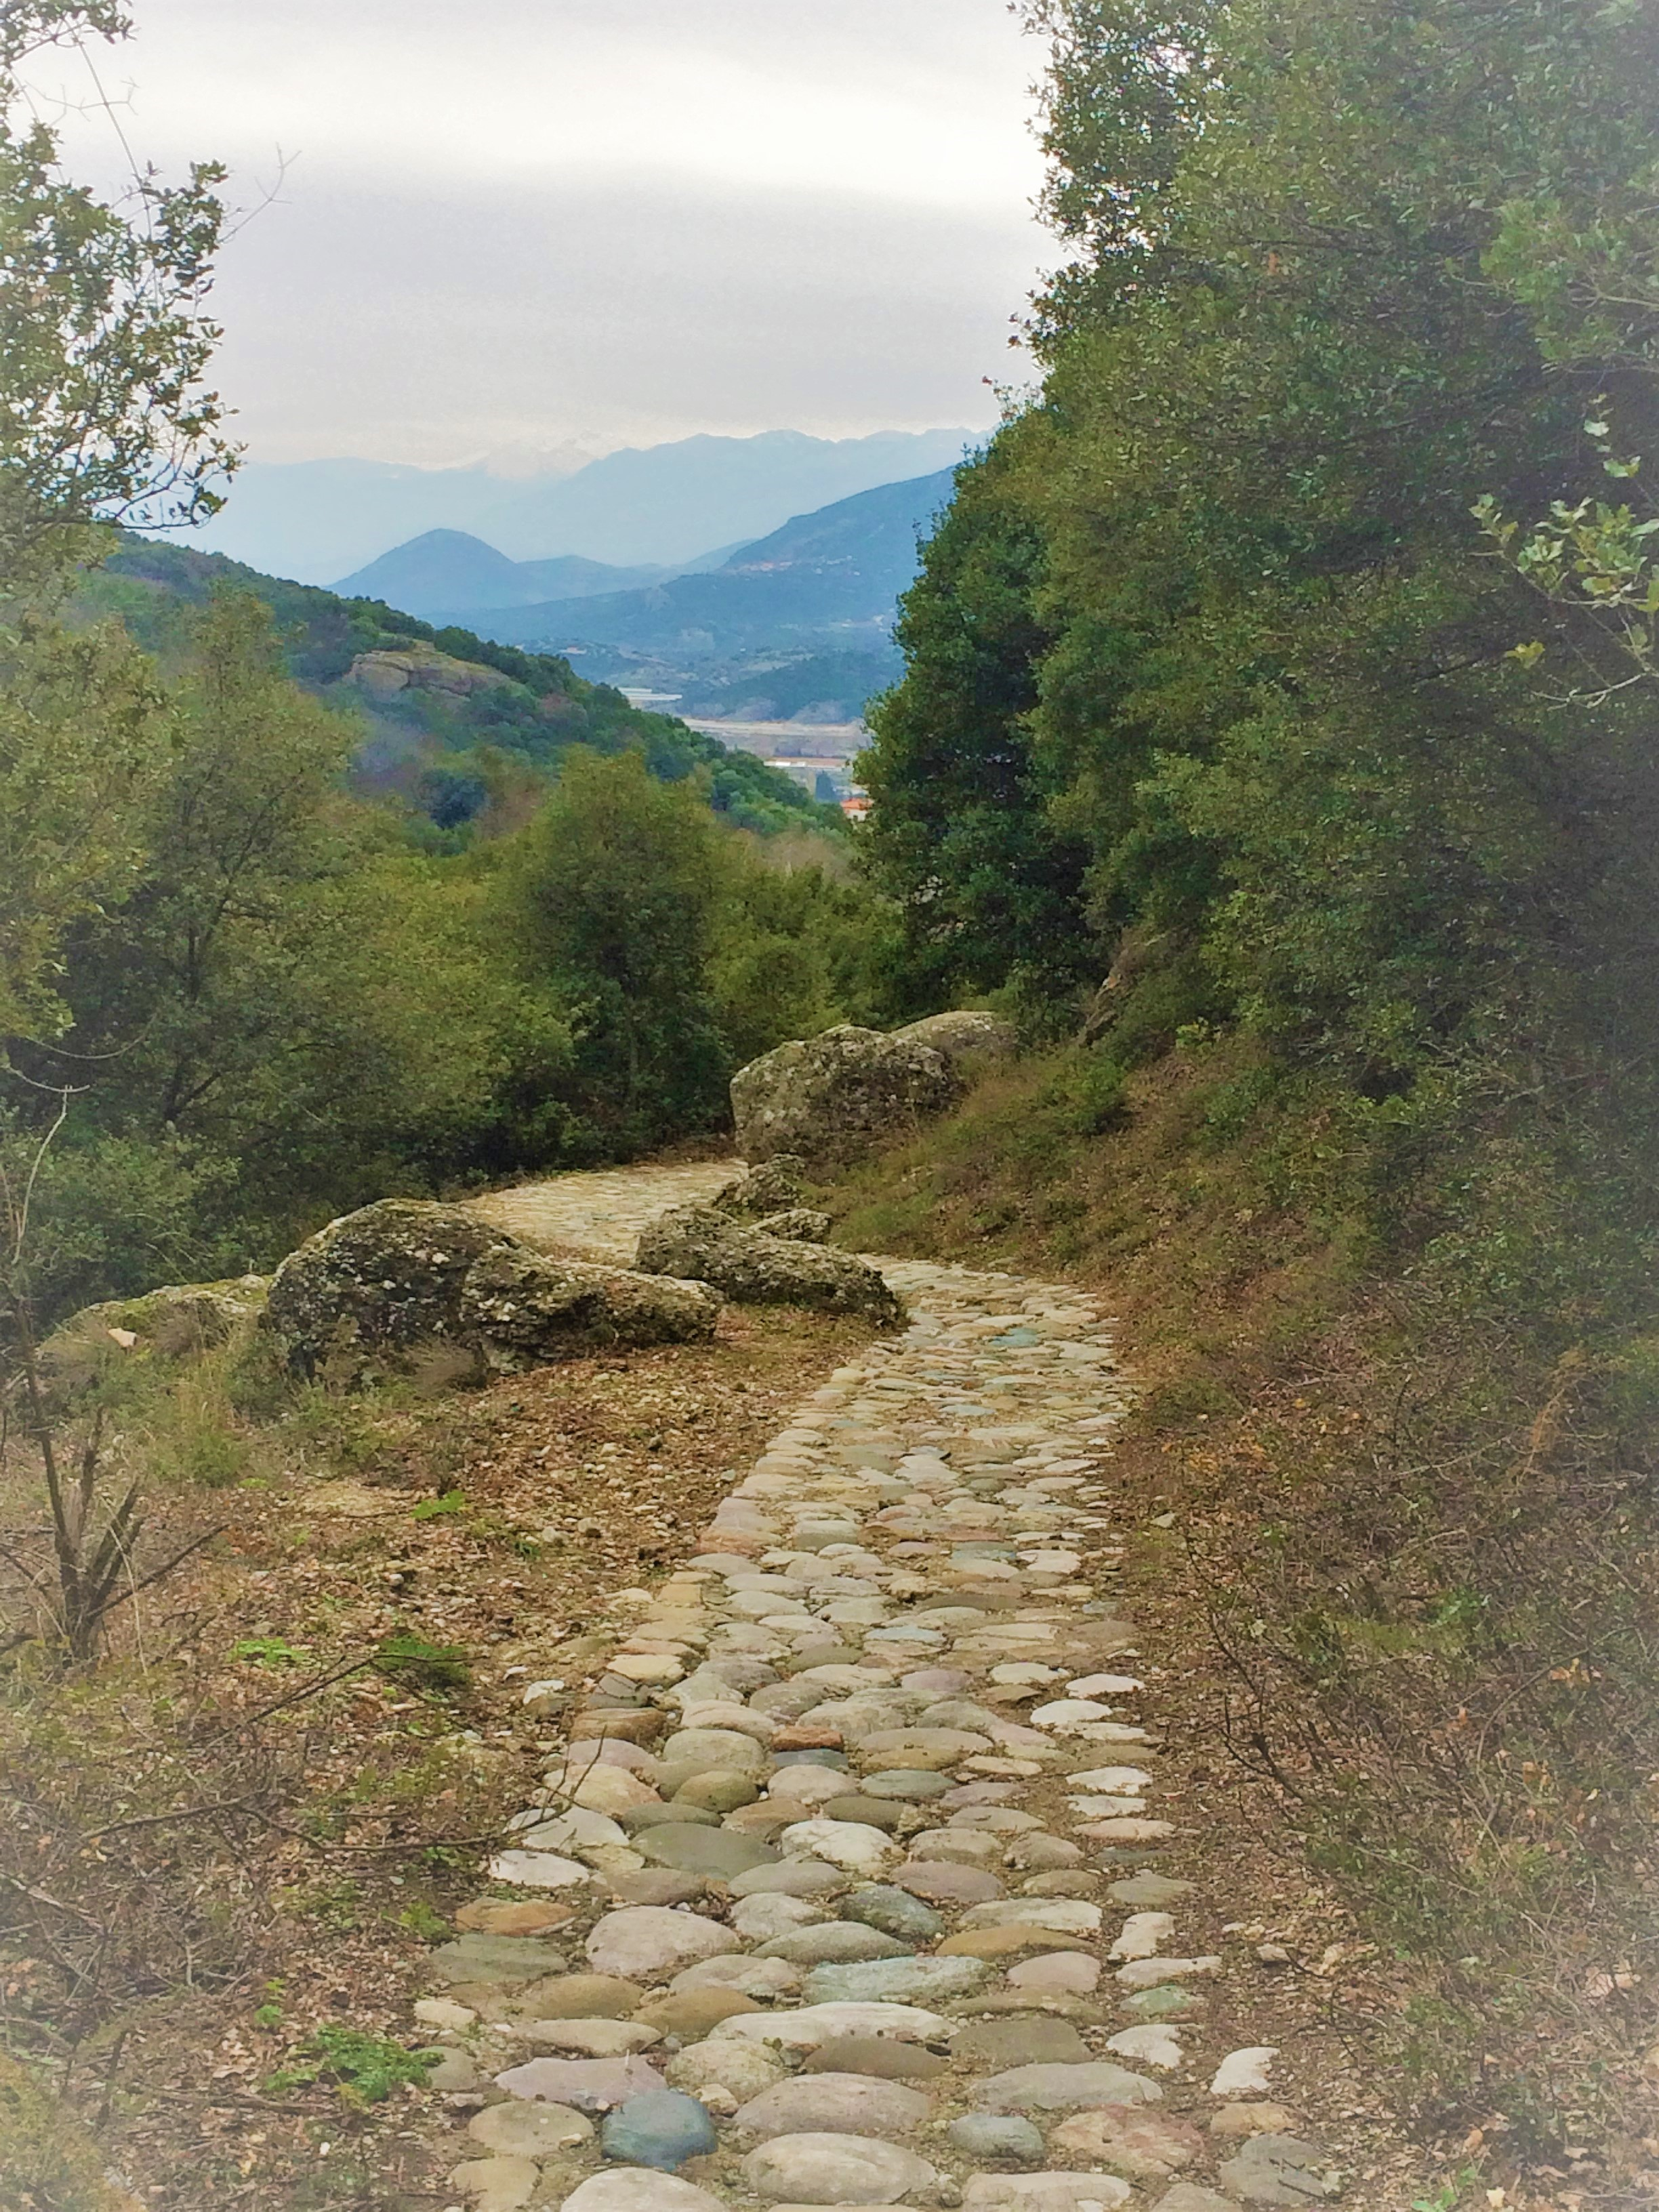 meteora--cobbled path to mountains-beautiful.JPG